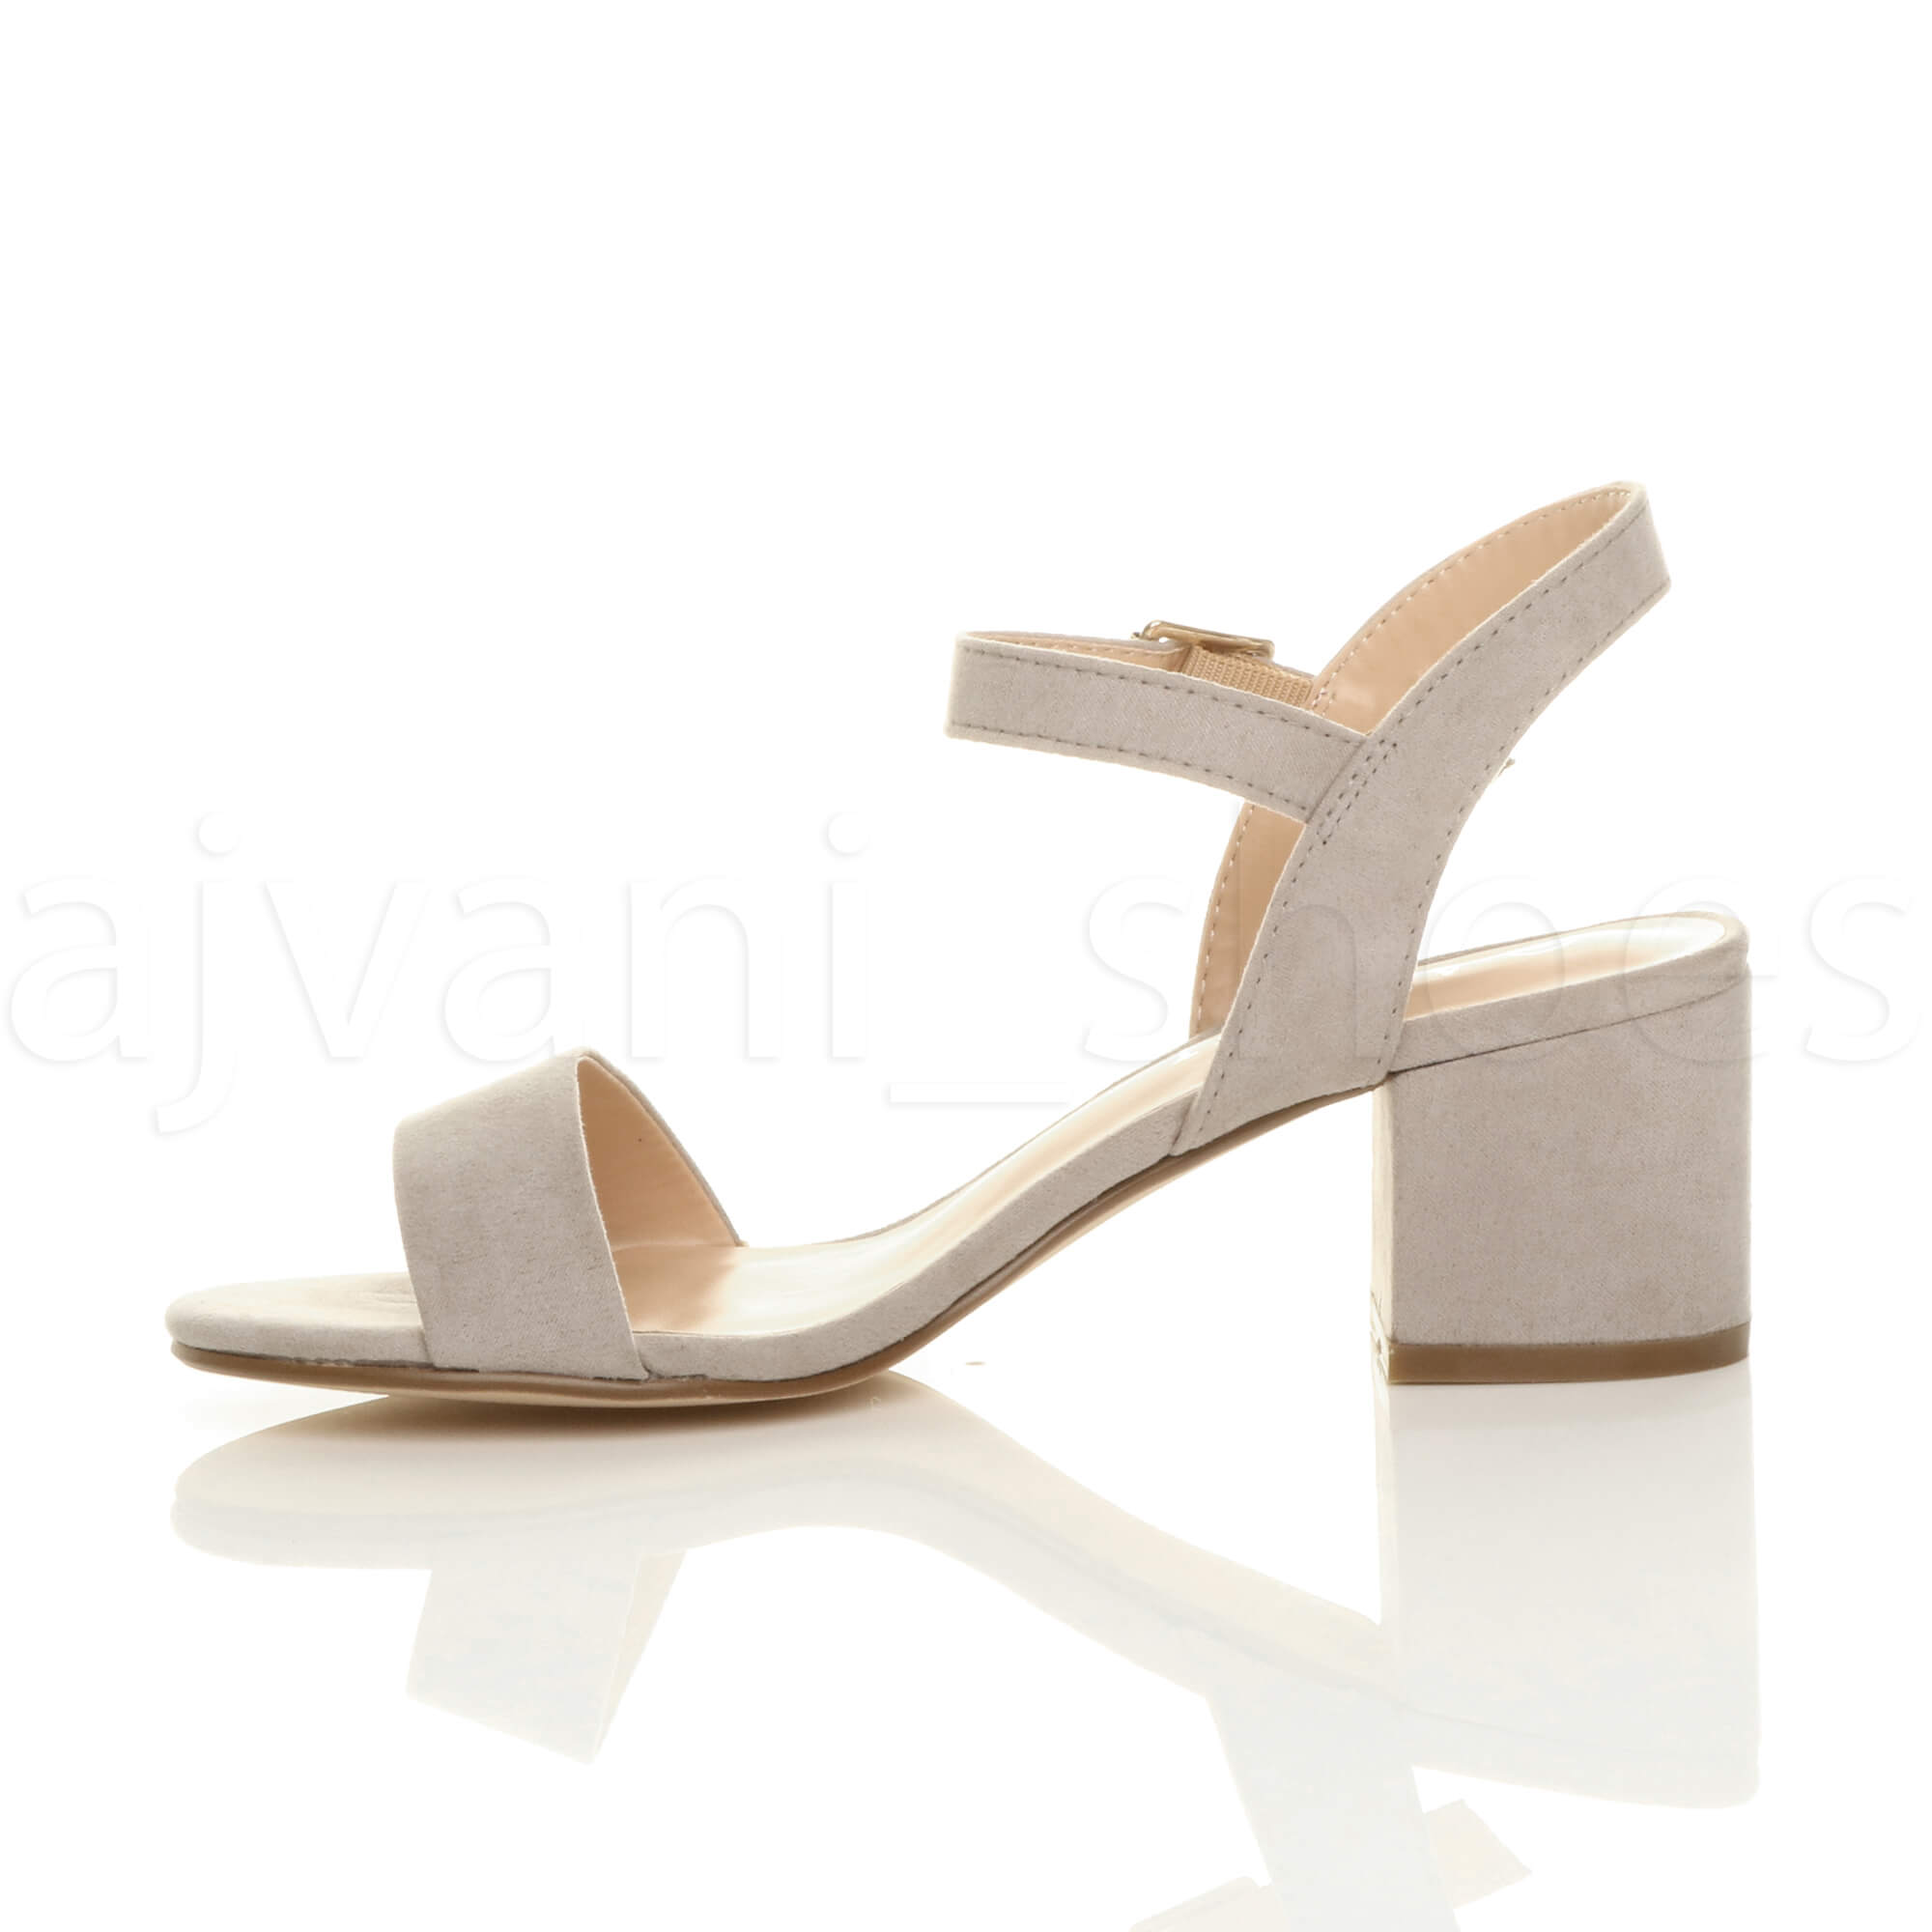 WOMENS-LADIES-MID-LOW-BLOCK-HEEL-PEEP-TOE-ANKLE-STRAP-STRAPPY-PARTY-SANDALS-SIZE thumbnail 68